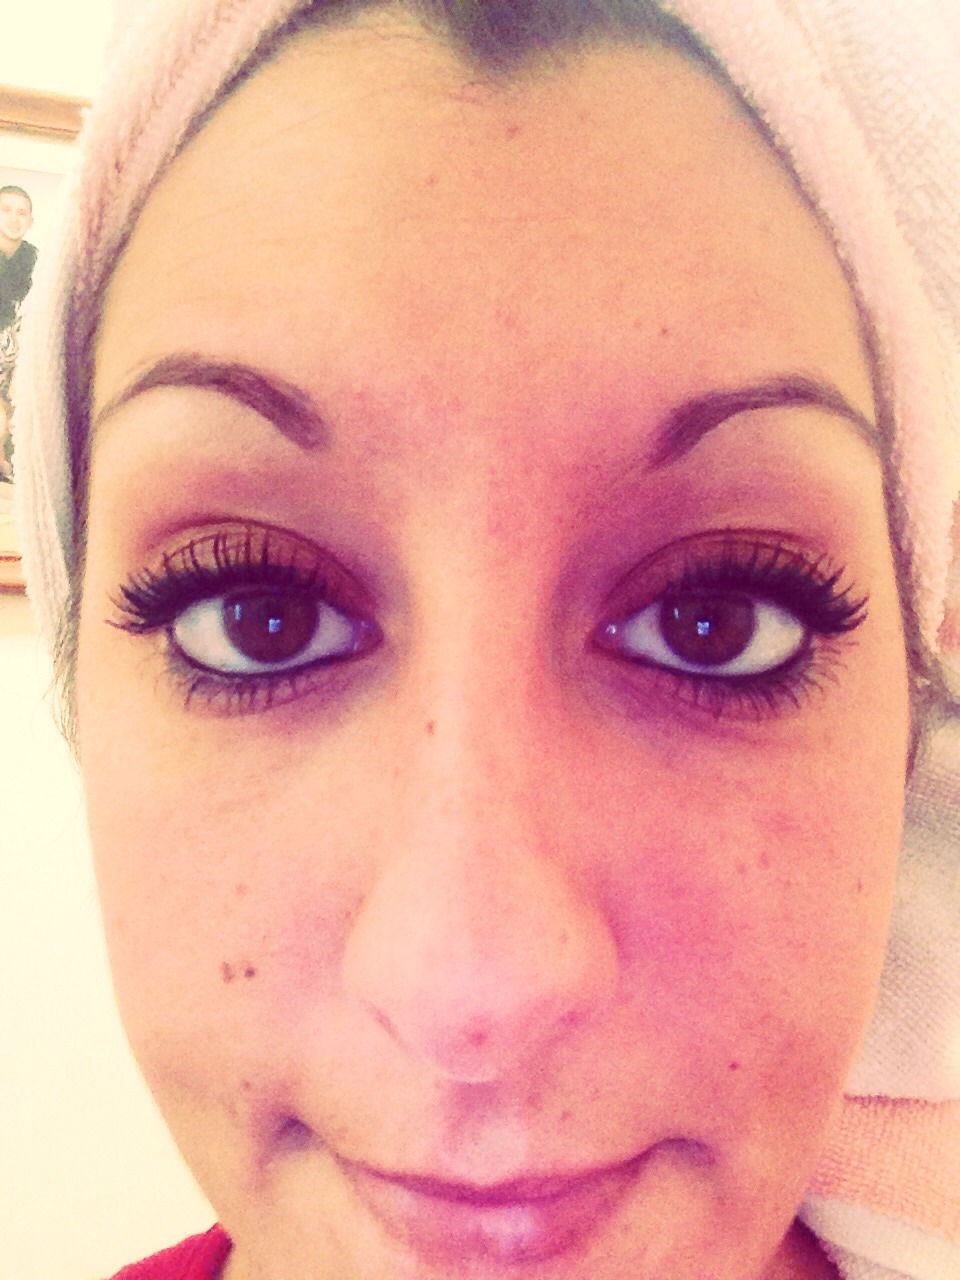 Heres how your lashes will look after trying my tip :). Enjoy❤️